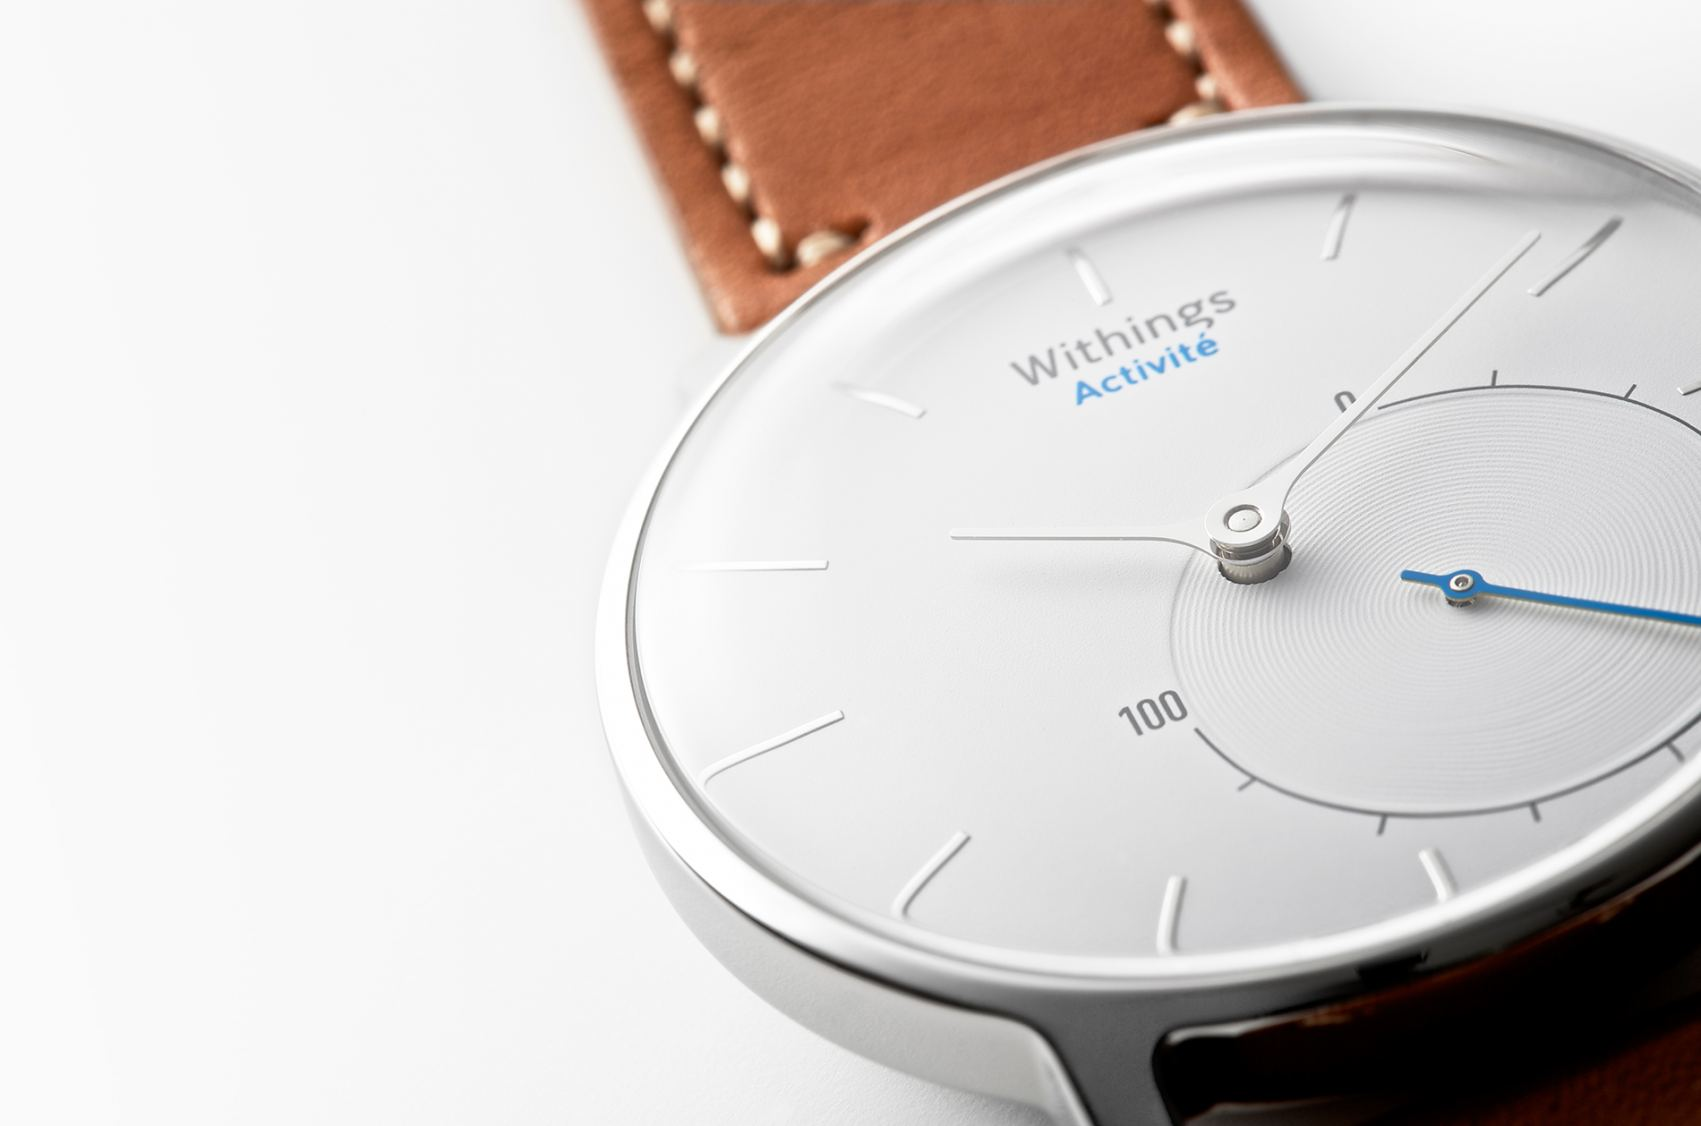 Withings coupon code